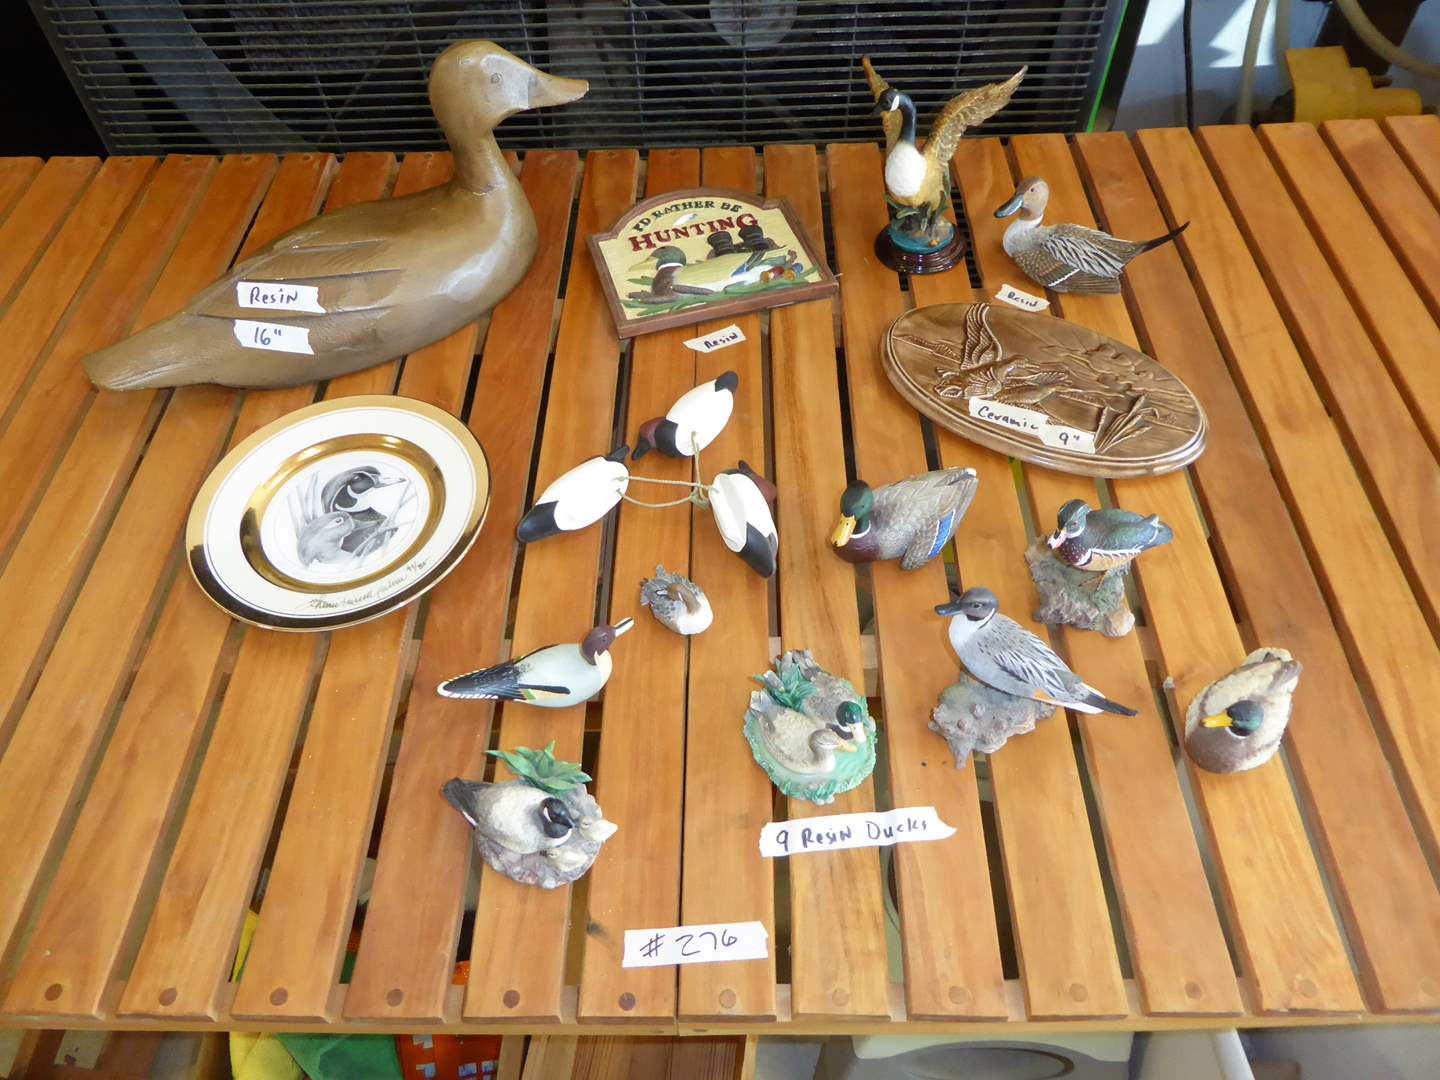 Lot # 276 - Resin Ducks, Ceramic Plaque & Decorative Plate  (main image)